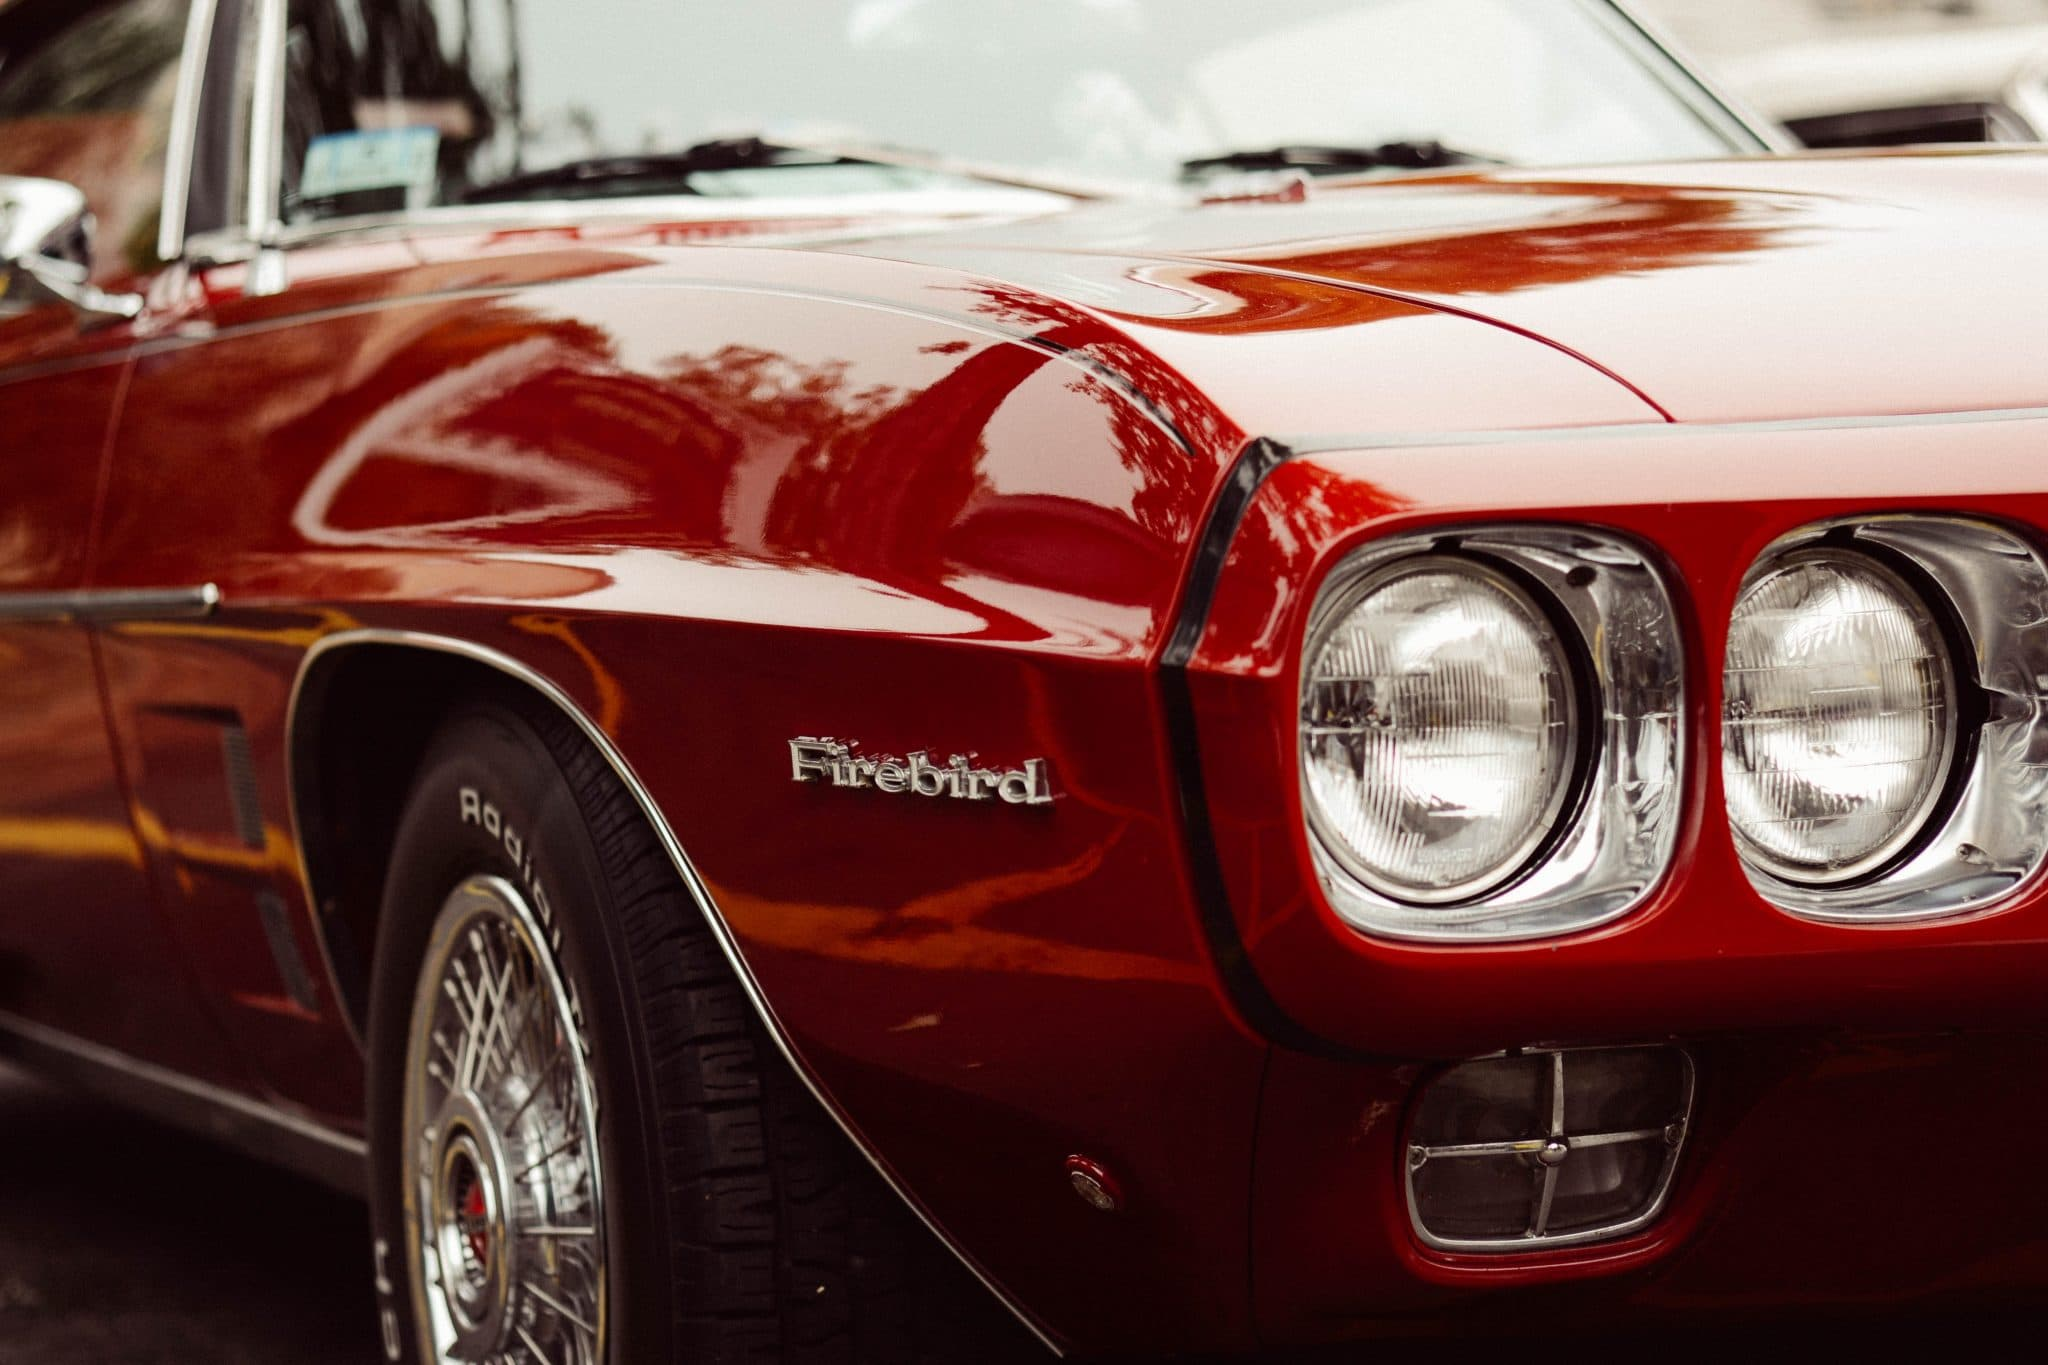 9 Ways to Maximize the Value of Your Car In Auction